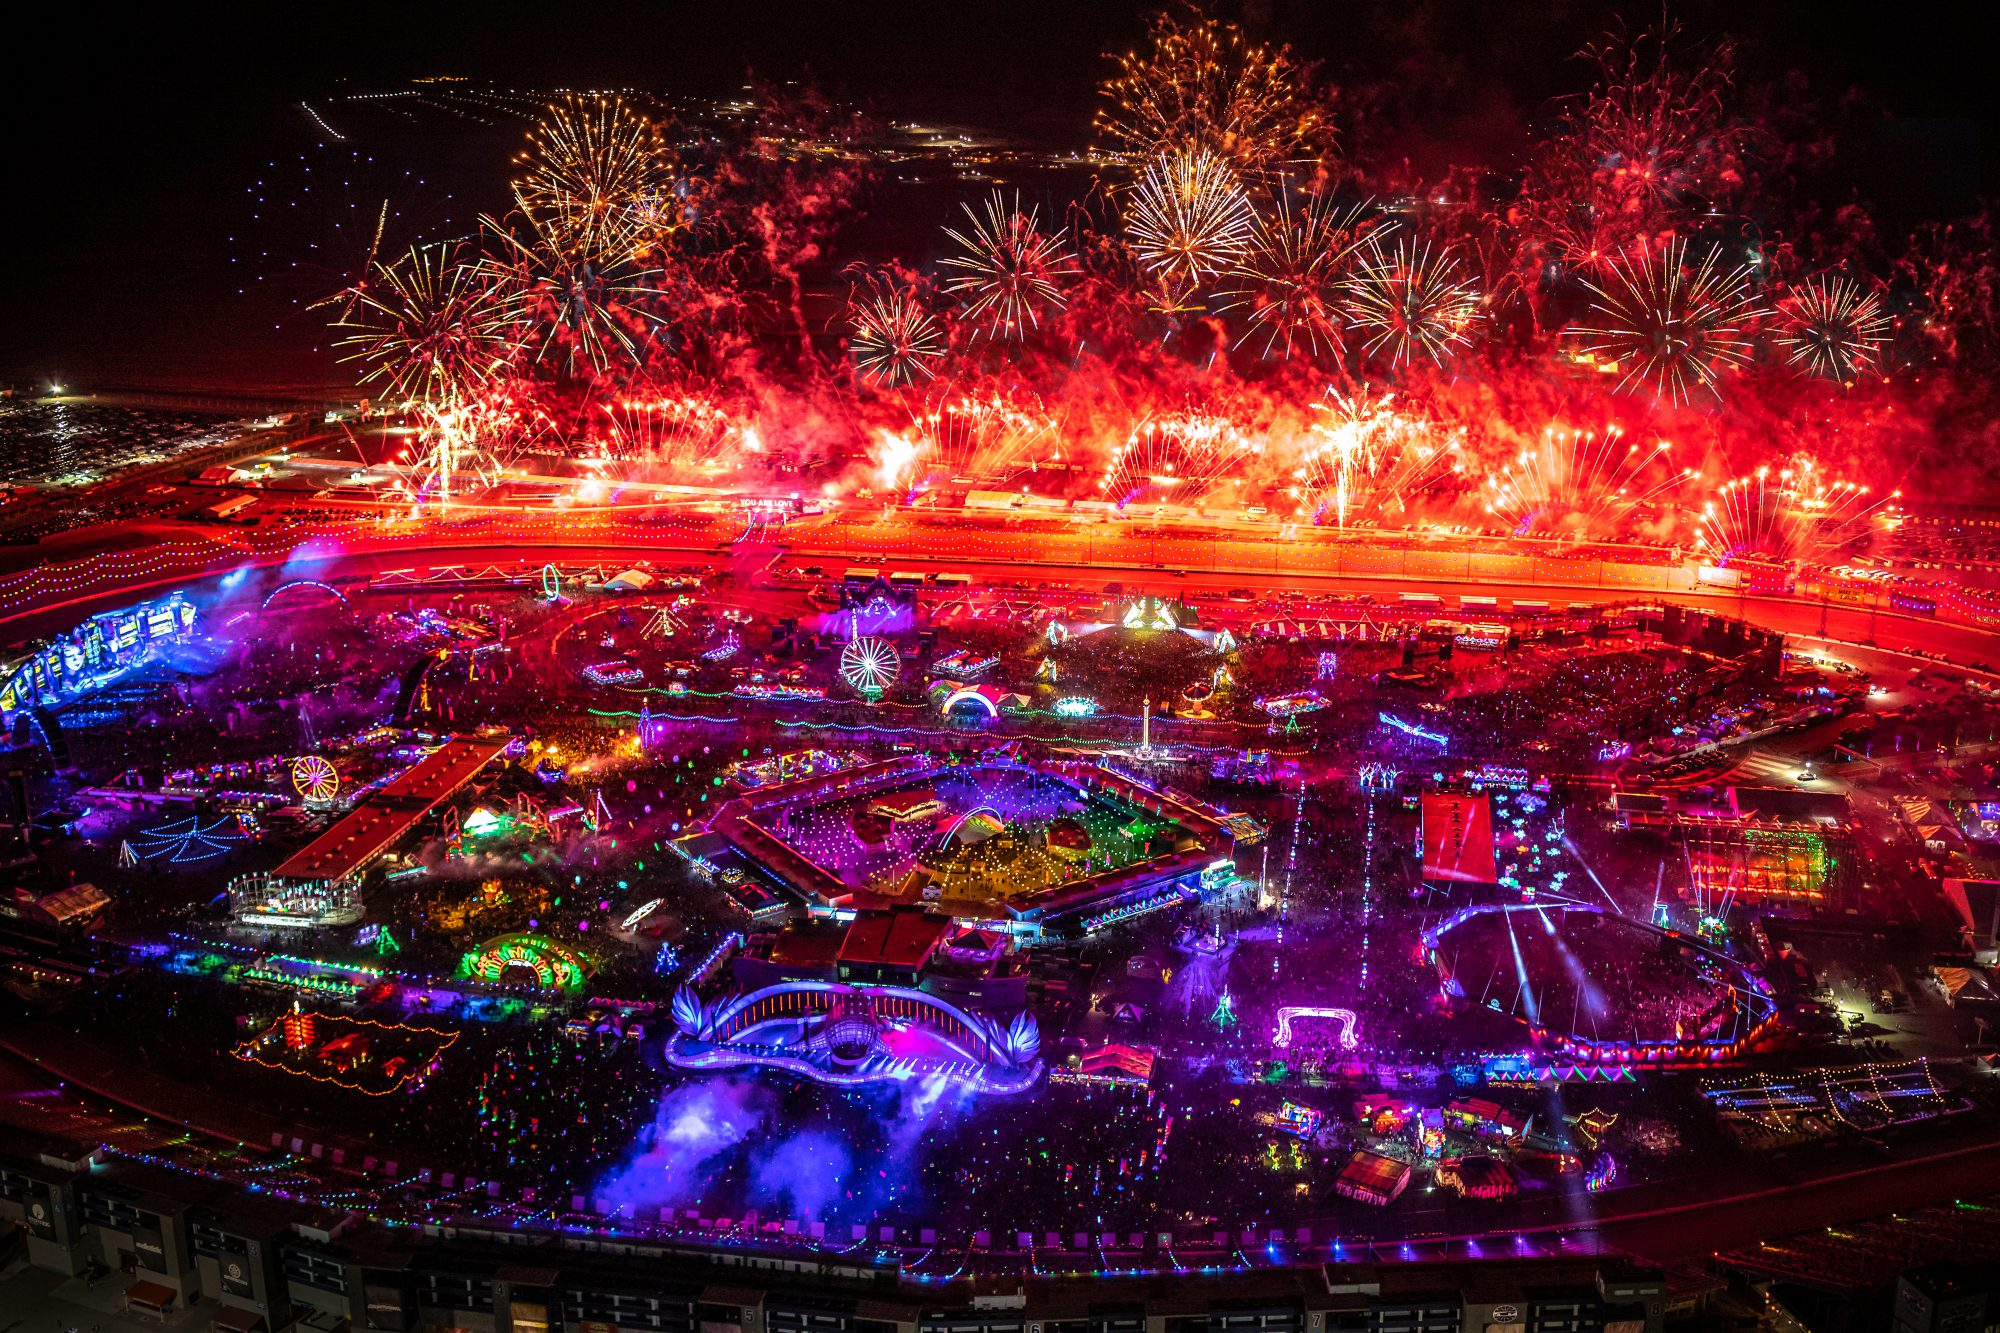 Concern Rises Over Possible EDC Las Vegas Ticket Scams